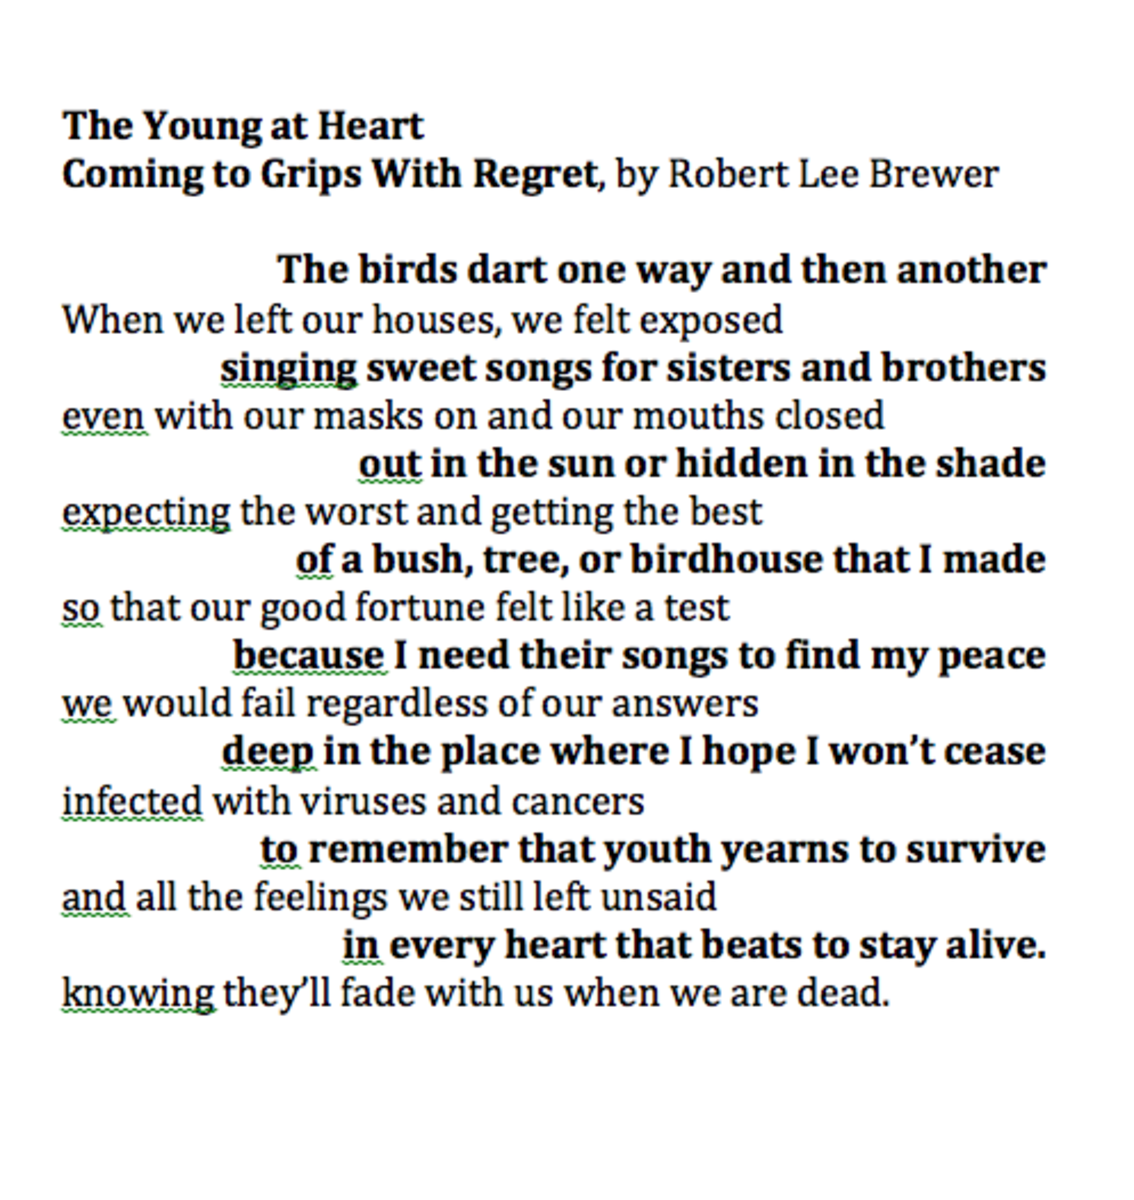 Double Exposure Poetic Forms example by Robert Lee Brewer